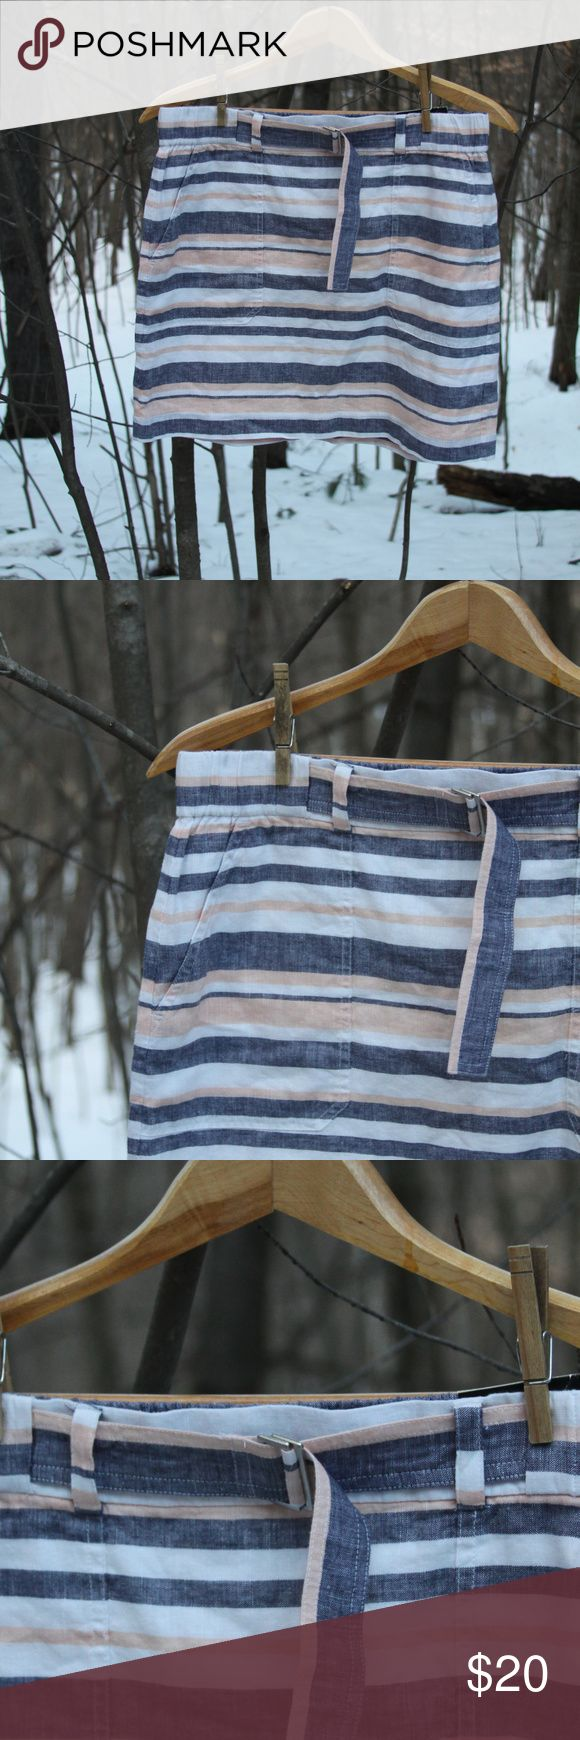 """Linen/cotton striped mini skirt w/belt (NWT) Cute, springy mini skirt with horizontal peach, blue and white stripes of varying widths.  Side pockets and one back pocket that is still stitched closed. Wide elastic waist with belt.  55% Linen, 45% Cotton with a 100% Cotton lining.  Waist 32"""" (unstretched); 36"""" (stretched) Overall length from waist to hem 16 1/4""""  All orders come with a free handmade lavender sachet! Banana Republic Skirts Mini"""